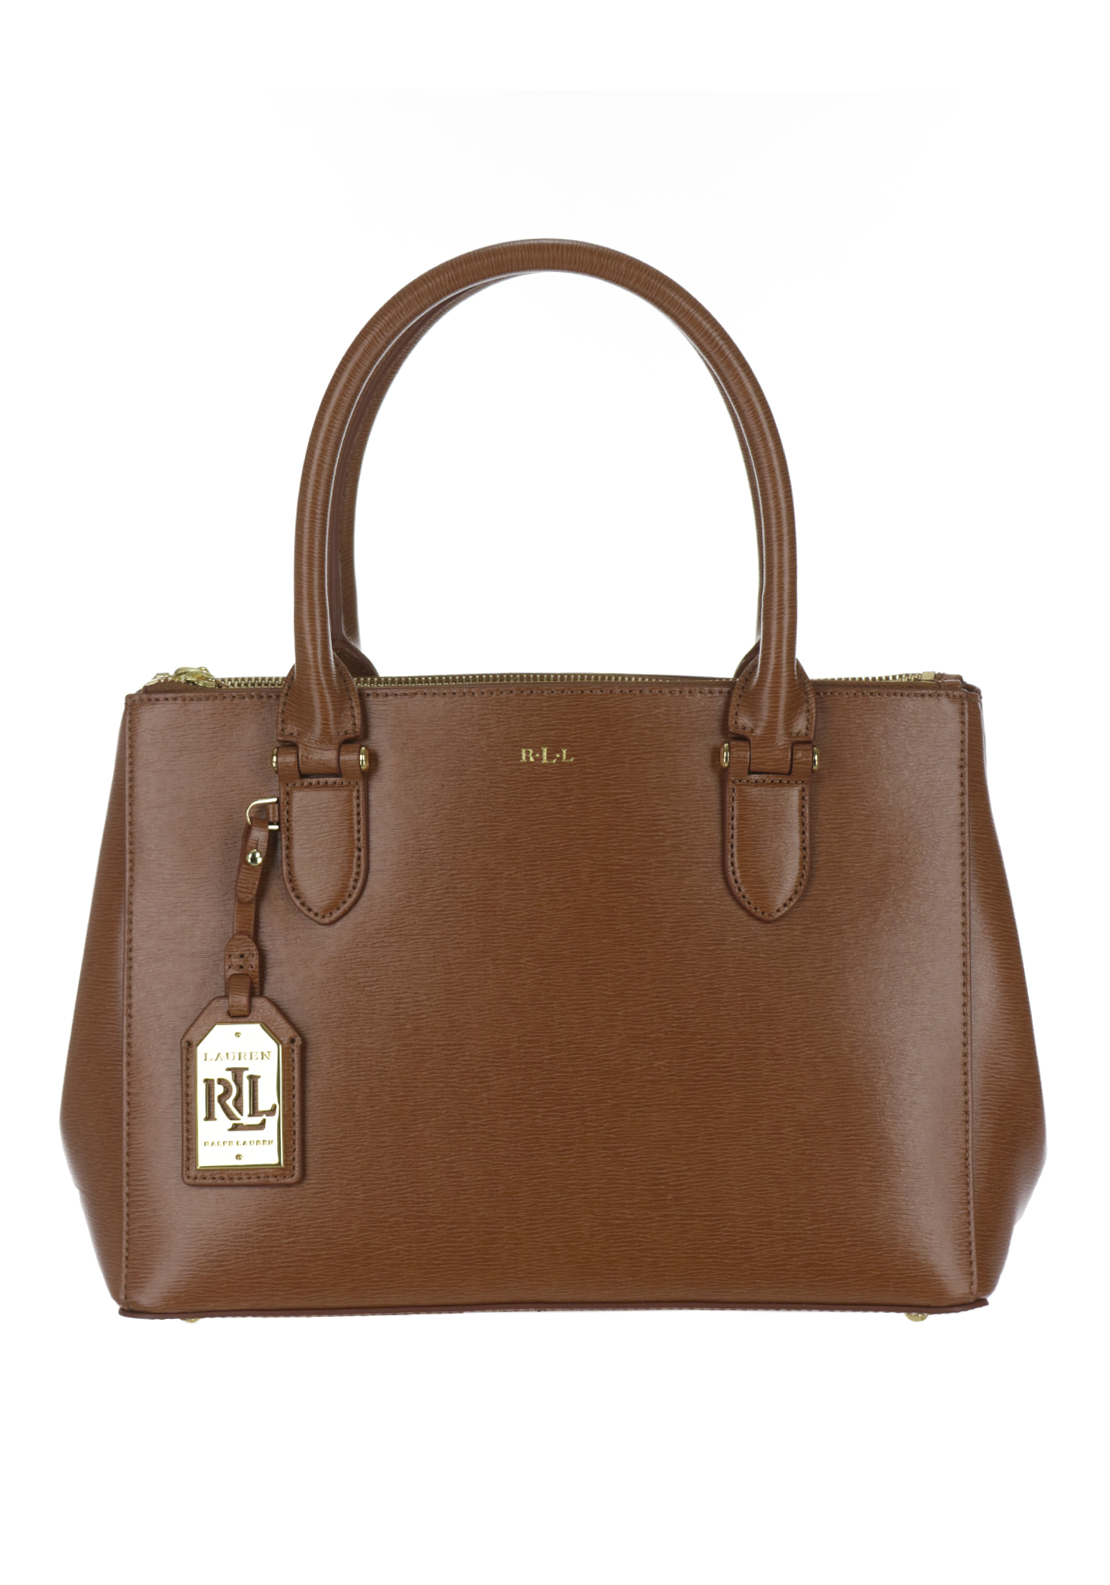 Ralph Lauren Newbury Leather Zip Tote Bag, Tan